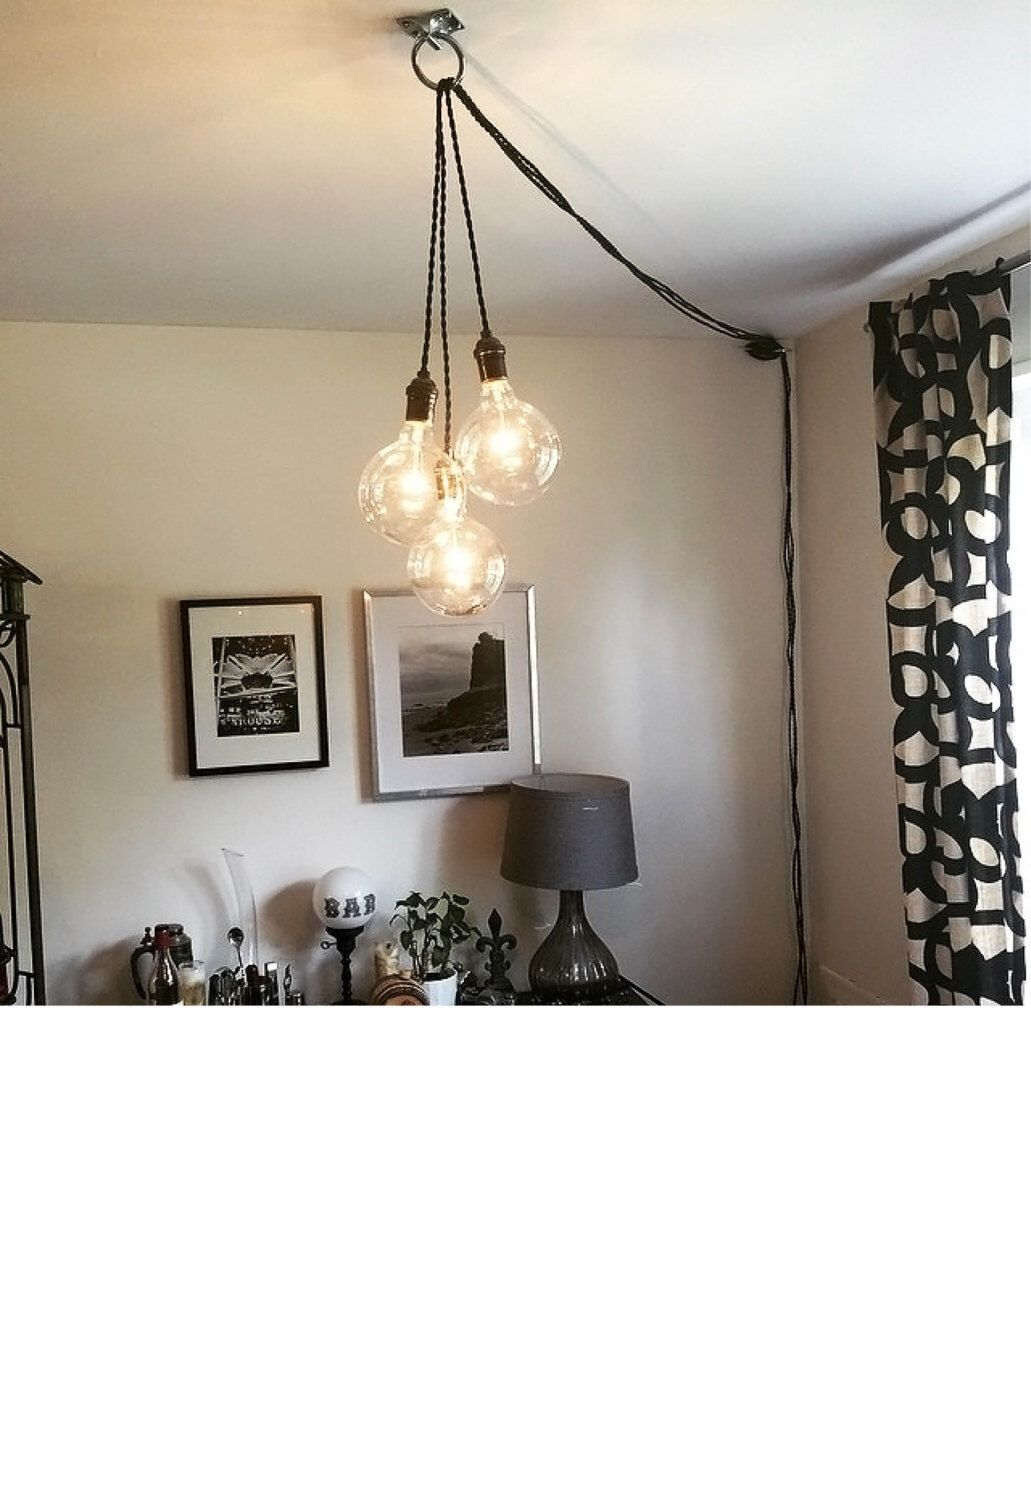 Ceiling Lights Enthusiastic Modern Led Ceiling Light For Living Dining Room Bedroom Lustres Led Chandelier Ceiling Lamp Lampara De Techo Lighting Fixtures Refreshing And Beneficial To The Eyes